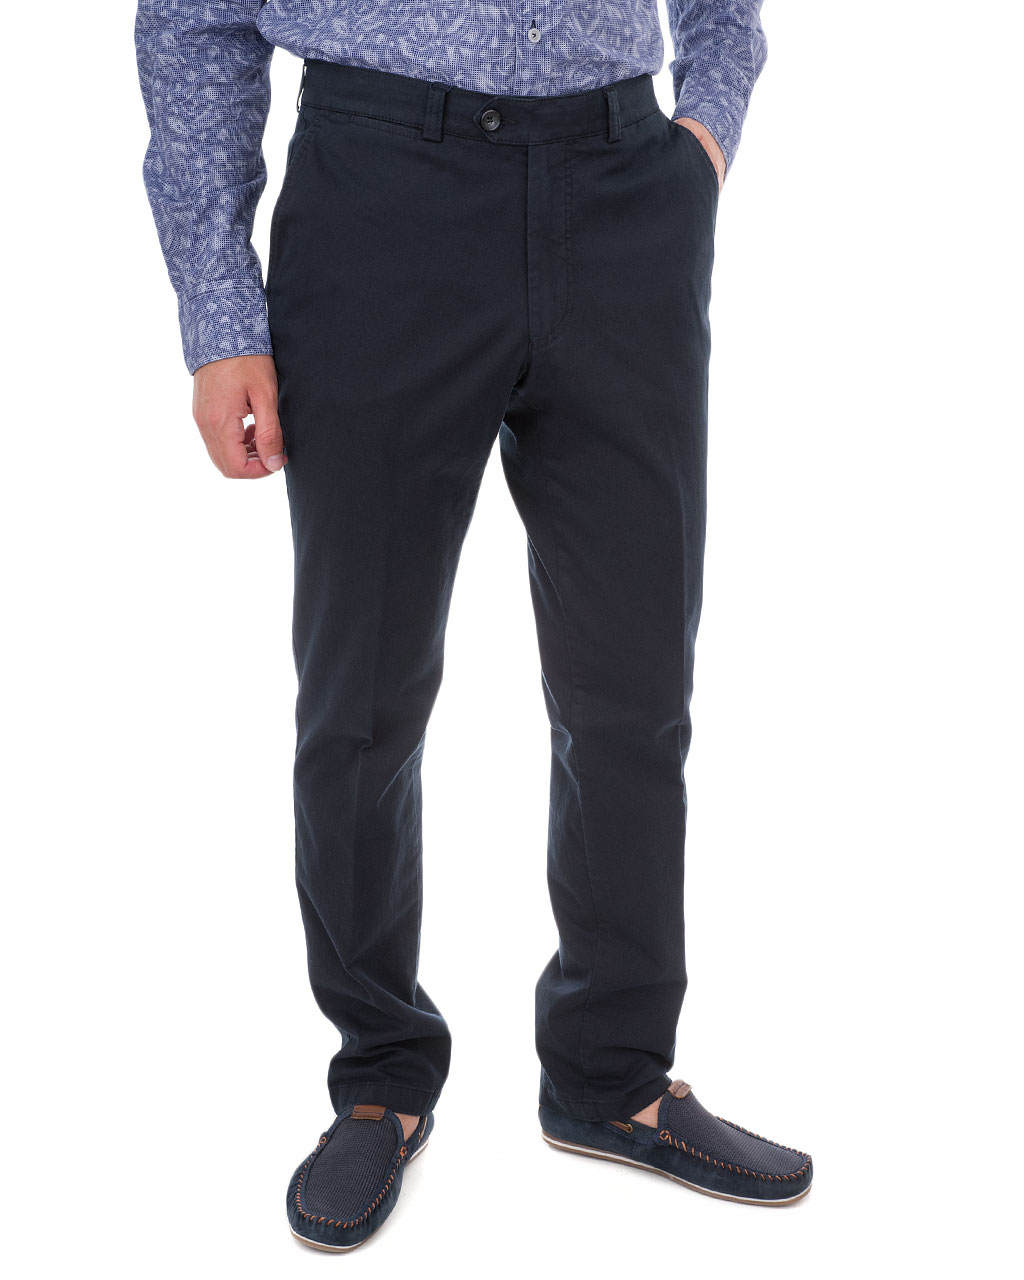 Men's trousers 410401-068/6             (3)